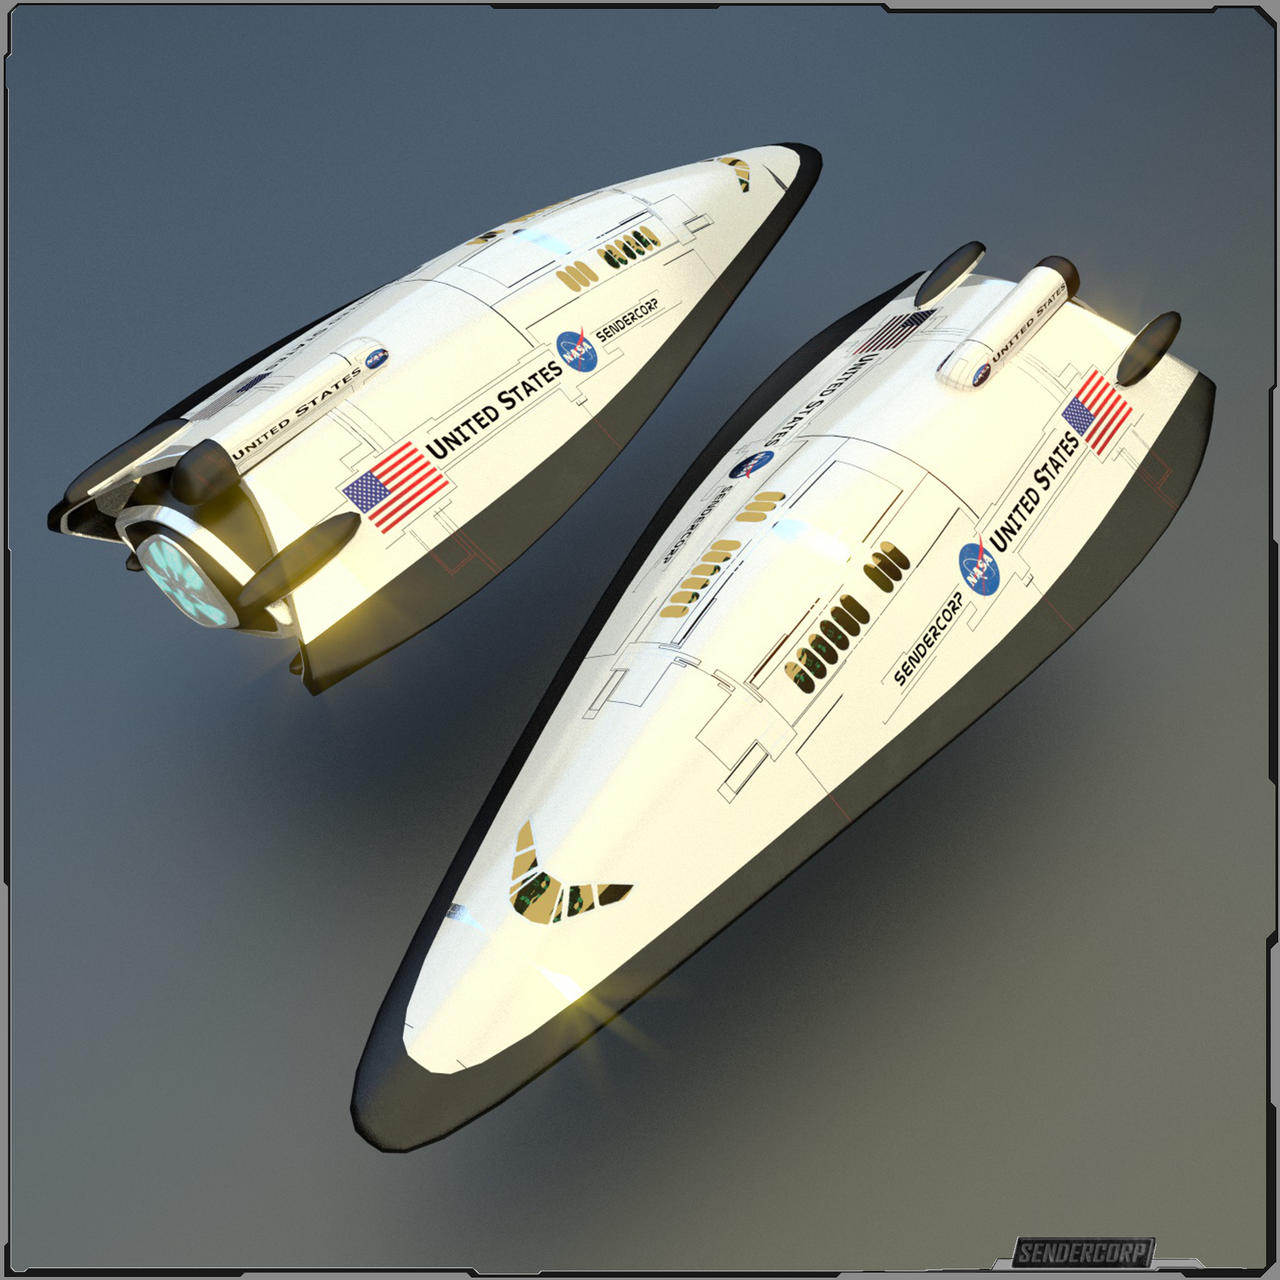 Shuttle XS - 01 by PINARCI on DeviantArt